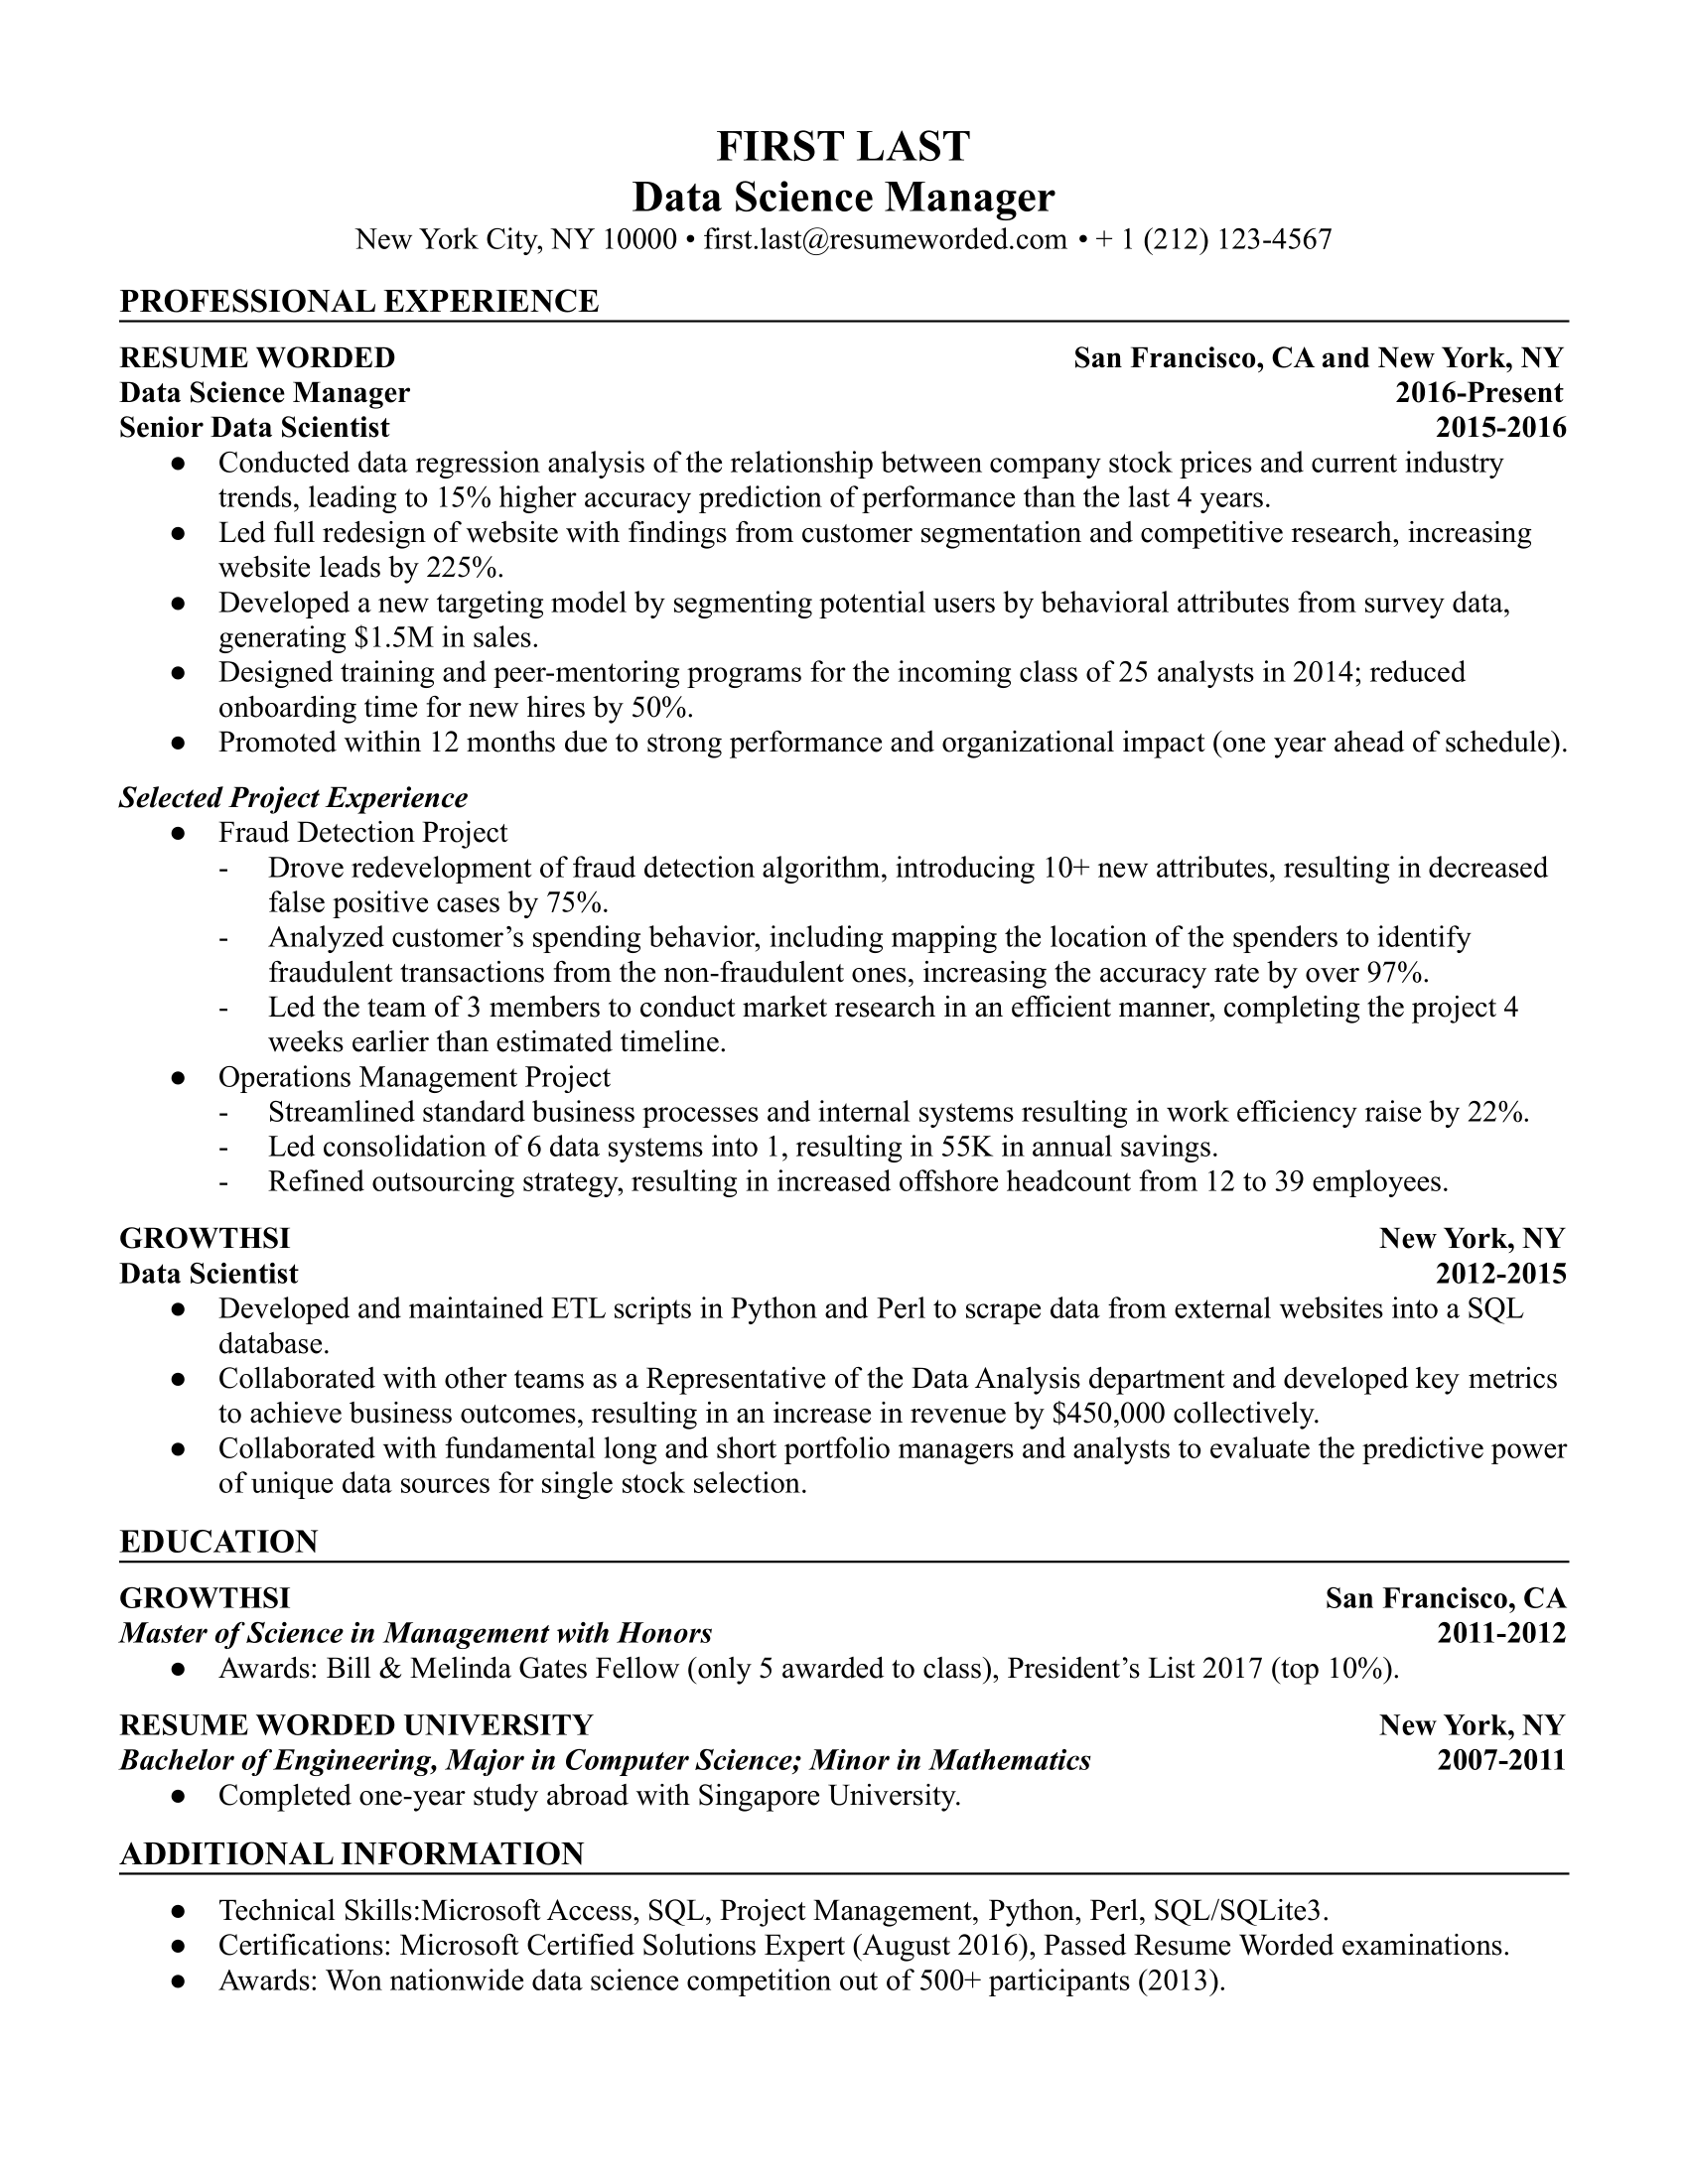 Data Science Manager Resume Sample